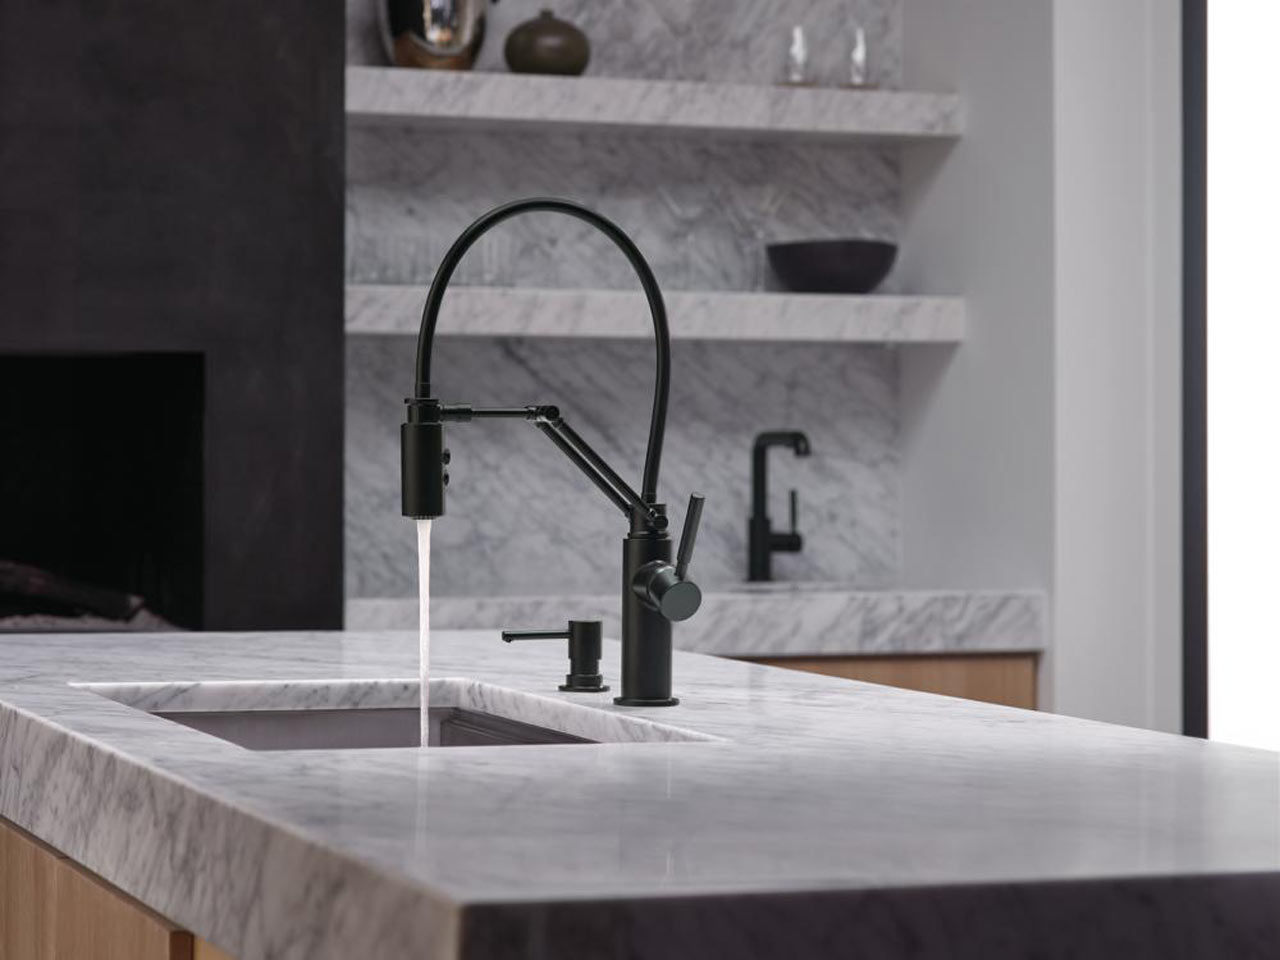 Articulating Kitchen Faucet A Kitchen Faucet That Works Hard And Looks Good Doing It